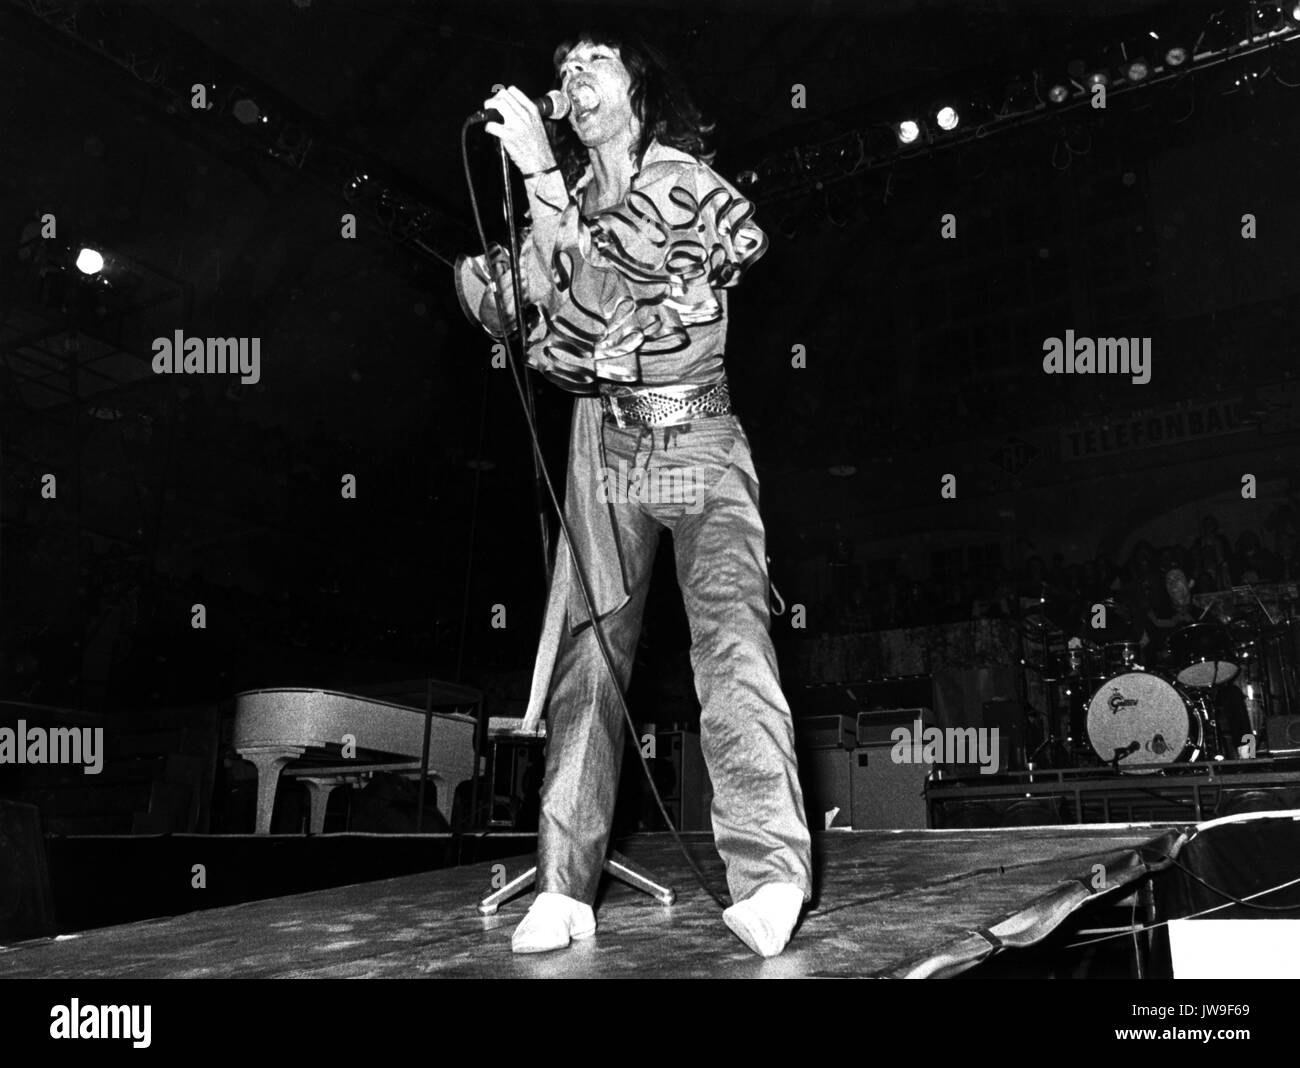 Mick Jagger on stage. The Rolling Stones on 28 April 1976 at the Festhalle in Frankfurt (Germany).   usage worldwide Stock Photo